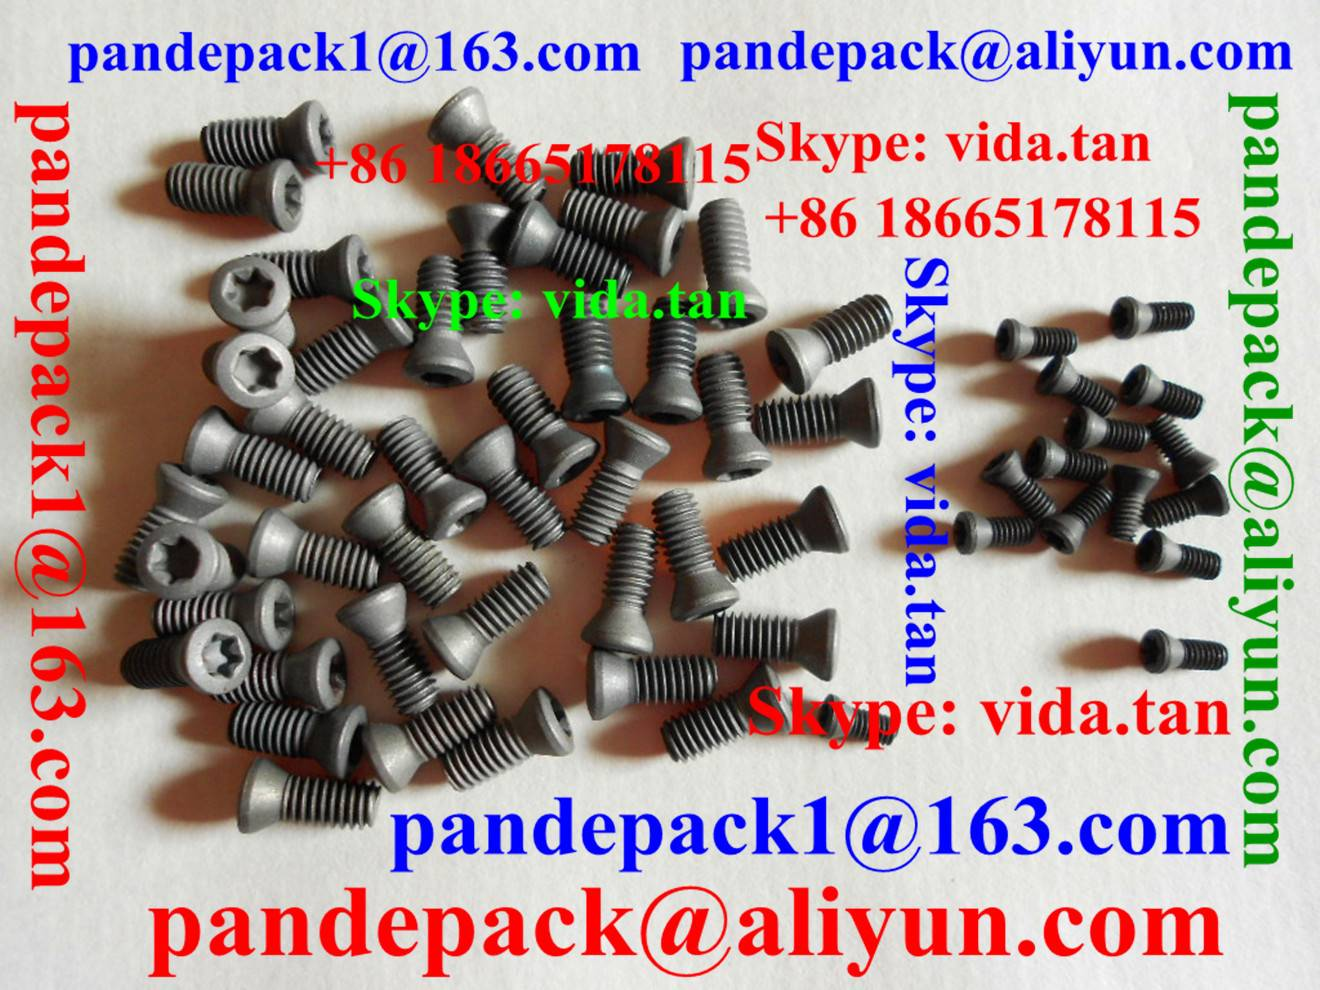 Sell Torx Screw for Lathe Tool Holder/Clamp Screw/Shim Screw/Insert Screw/Machine Screw/Tool Parts